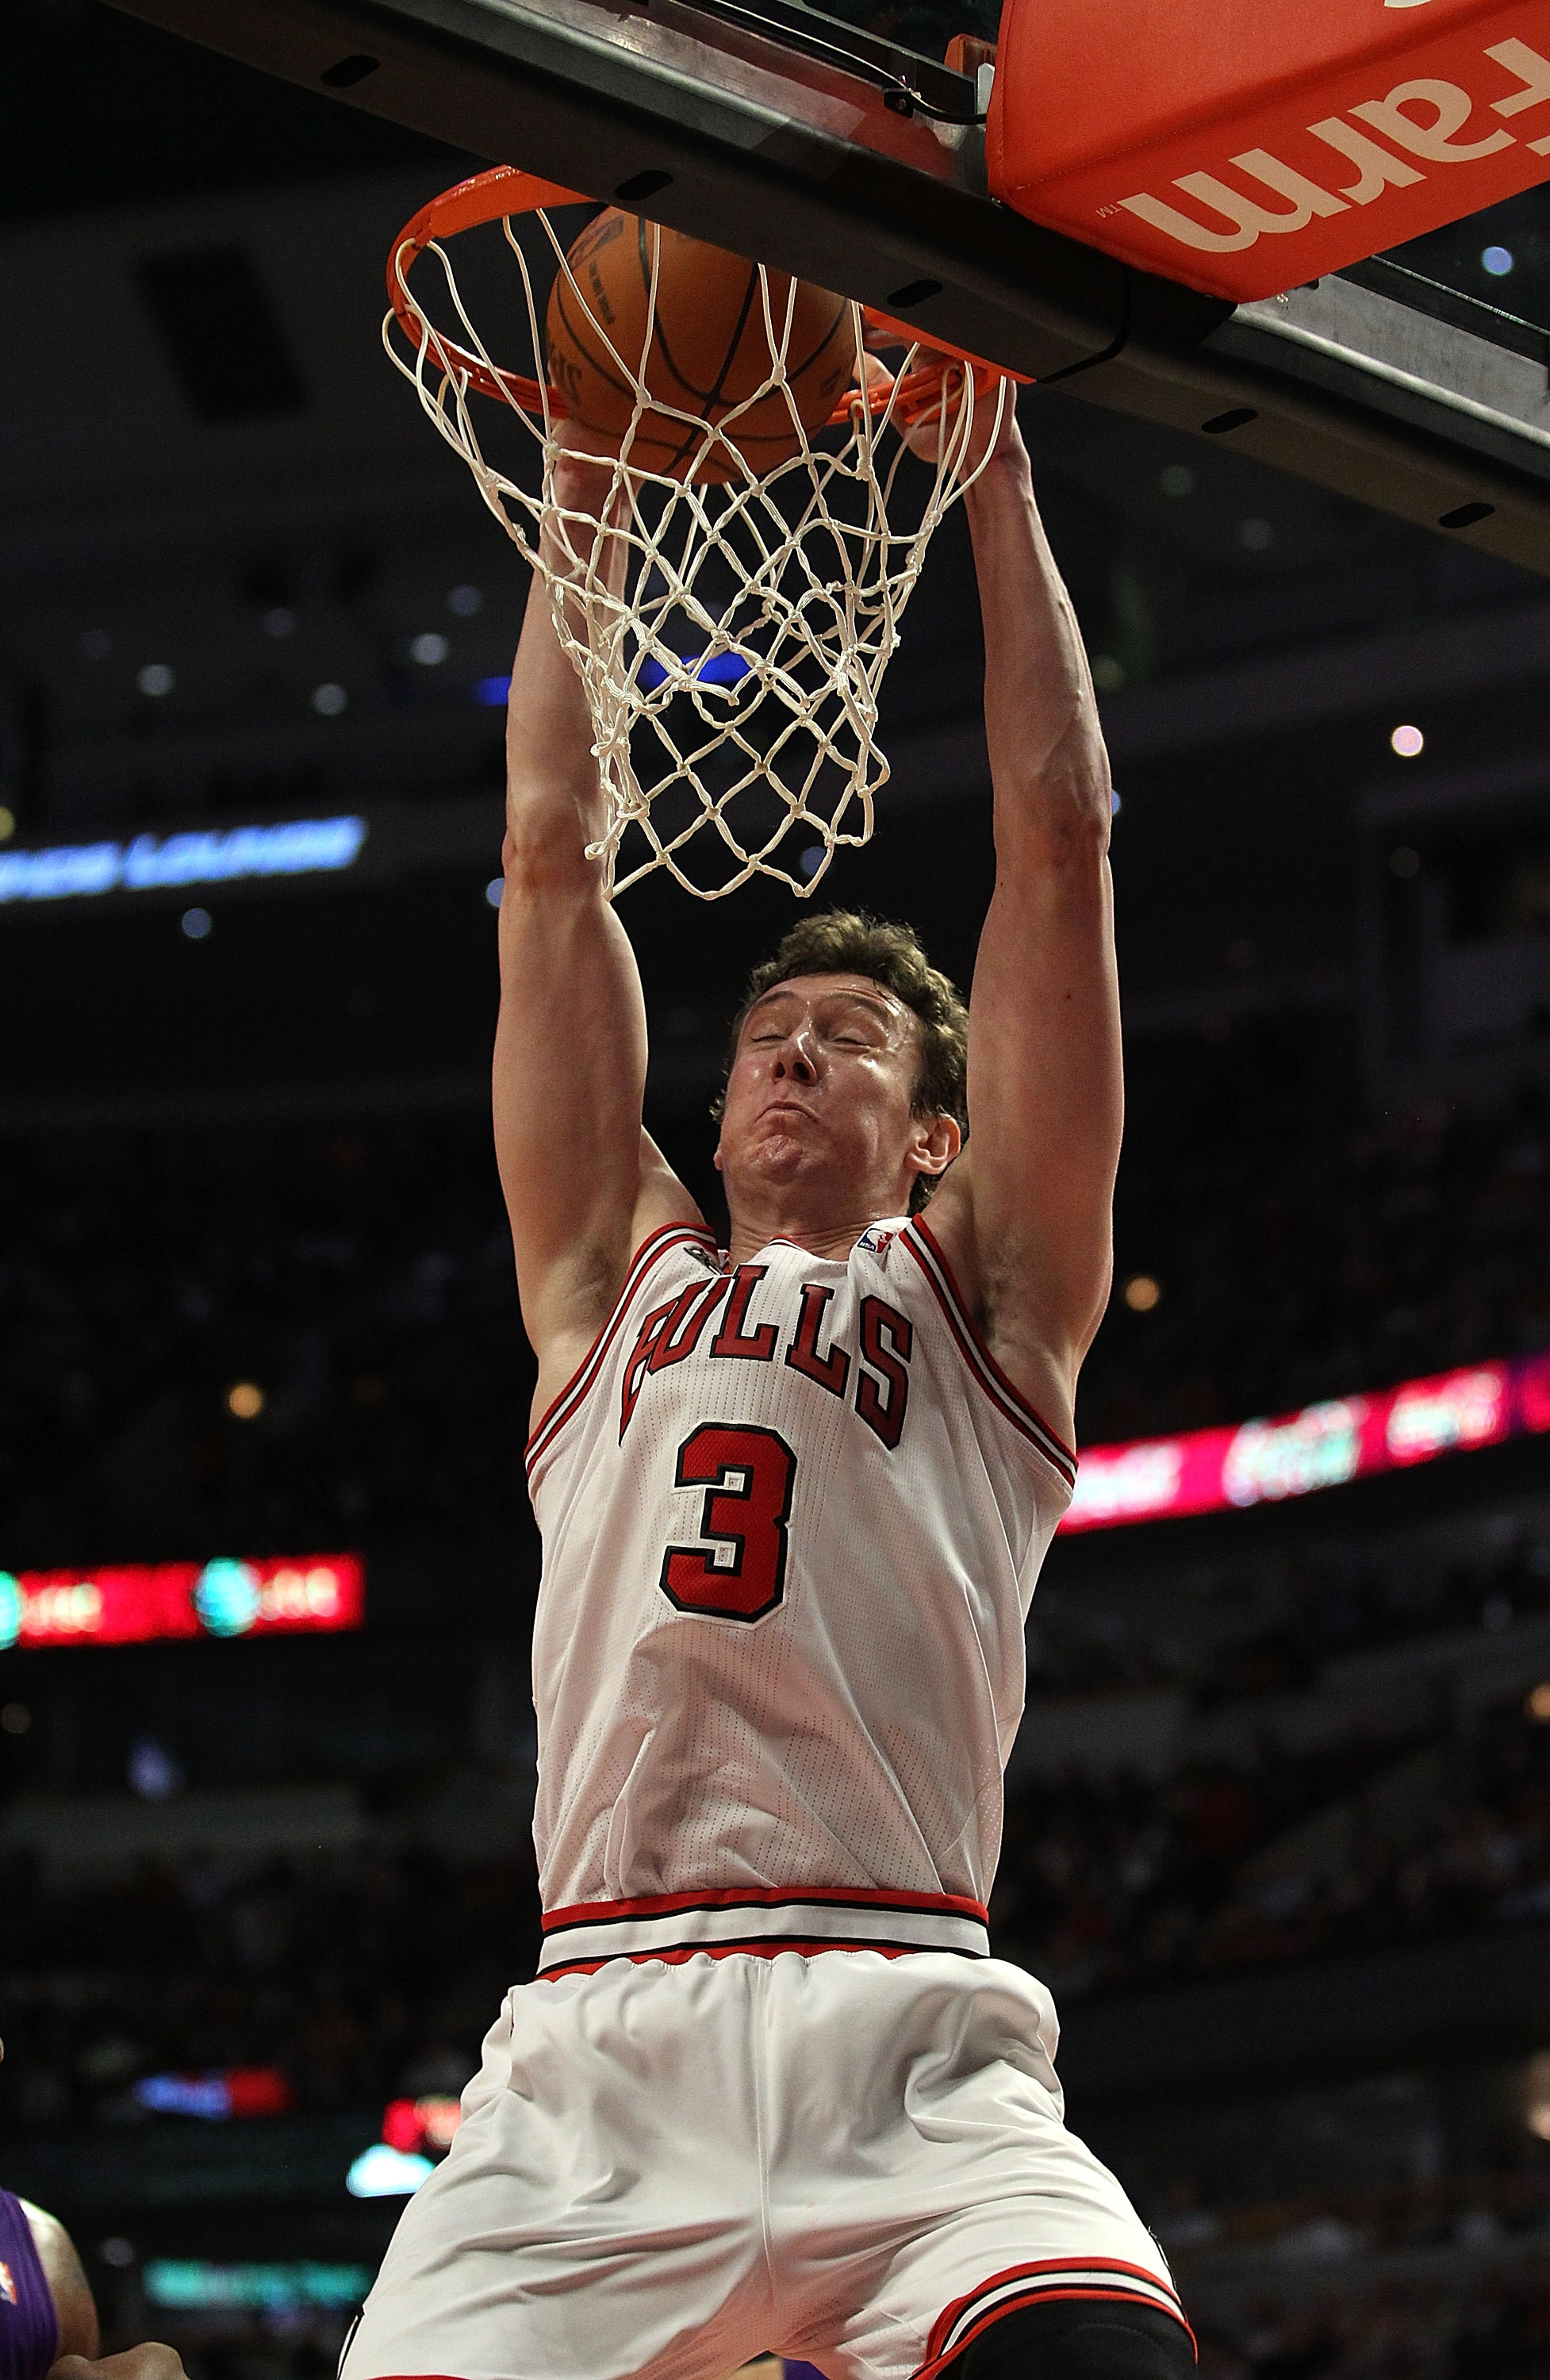 CHICAGO, IL - MARCH 21: Omer Asik #3 of the Chicago Bulls goes up for a dunk against the Sacramento Kings at the United Center on March 21, 2011 in Chicago, Illinois. The Bulls defeated the Kings 132-92. NOTE TO USER: User expressly acknowledges and agree